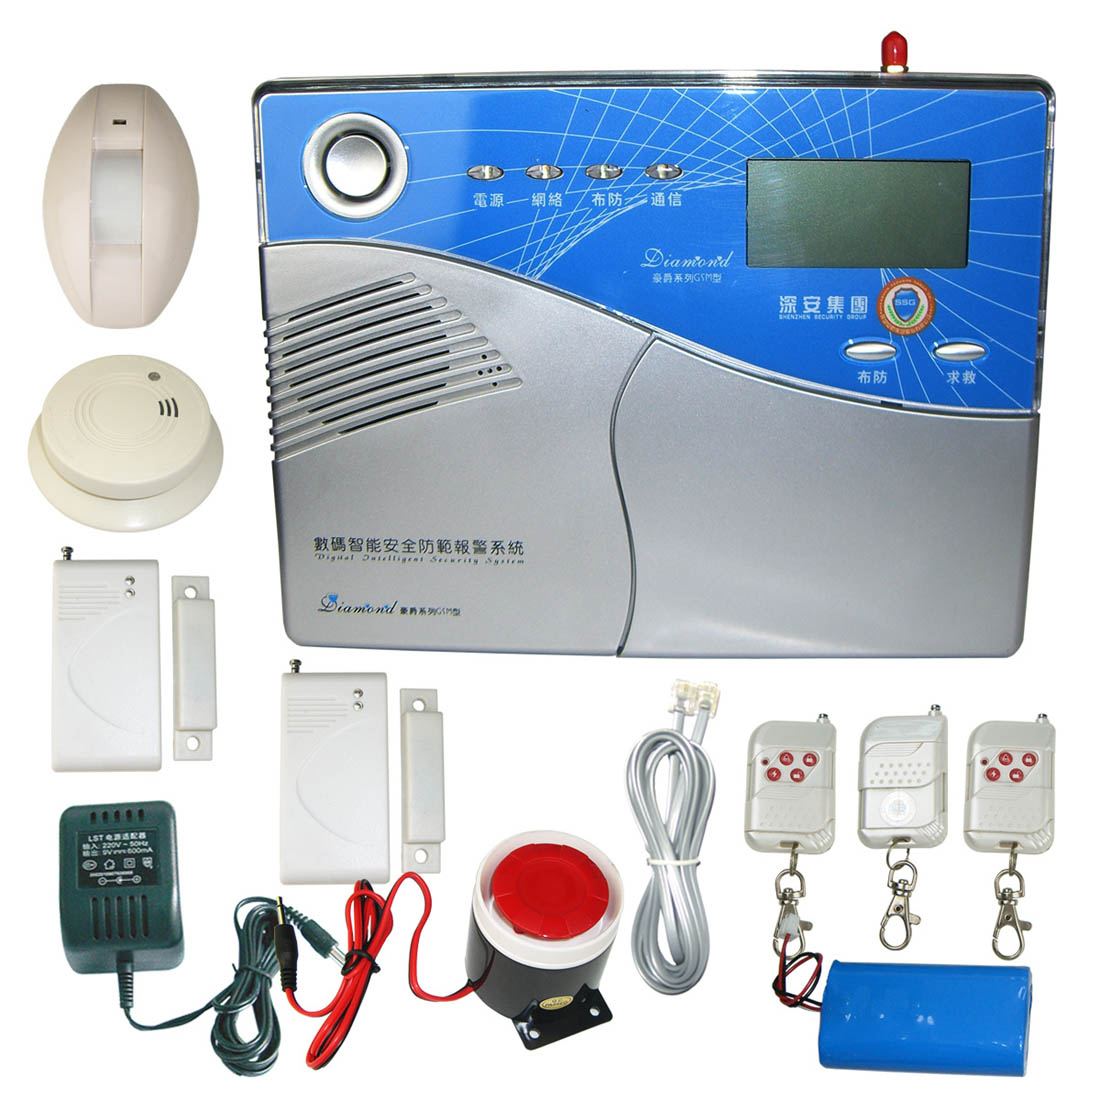 Wireless alarm system PK-1168-Y-TEL-LCD